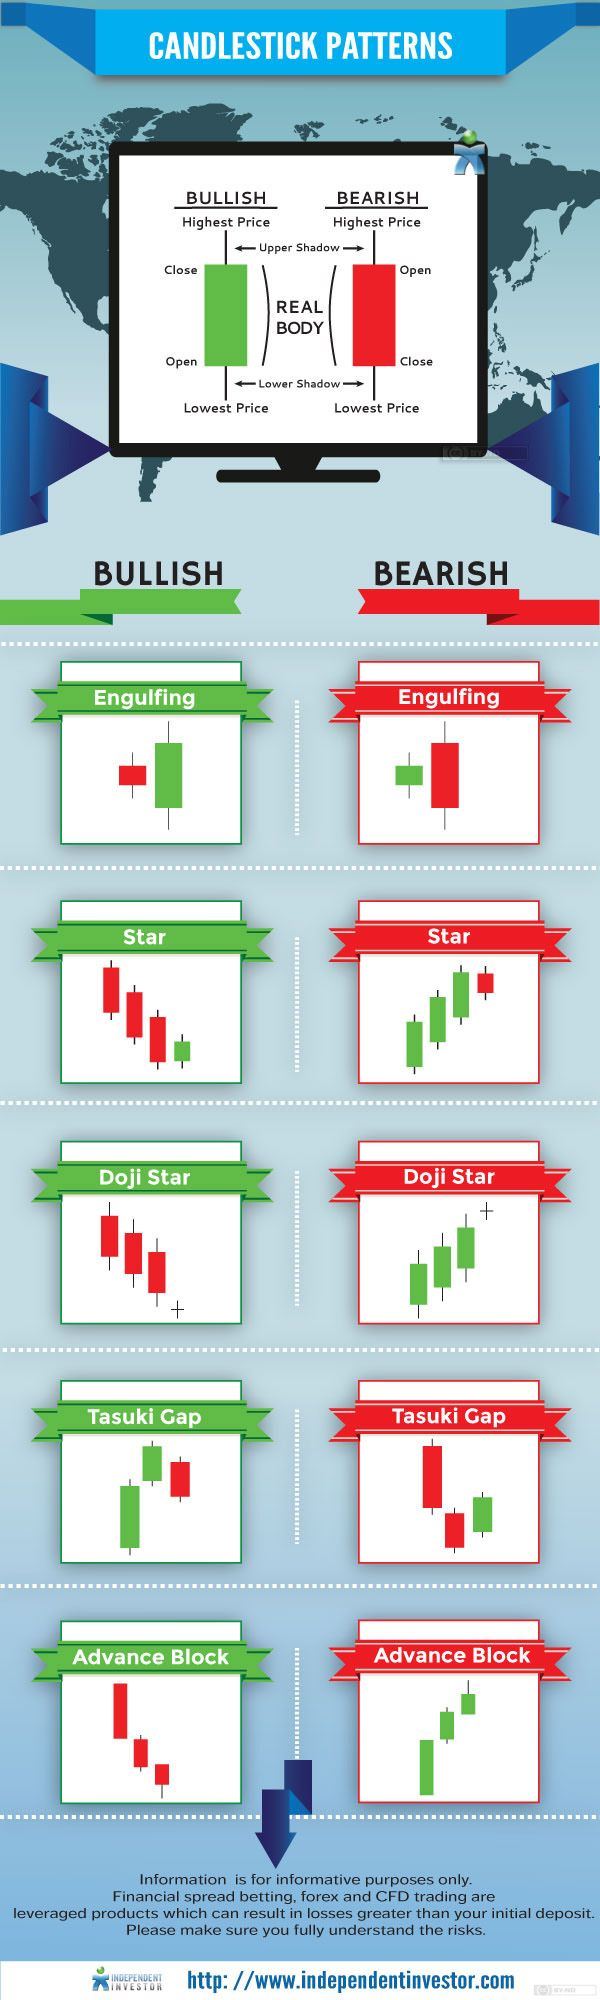 Candlestick Charting Explained - Understand and Apply